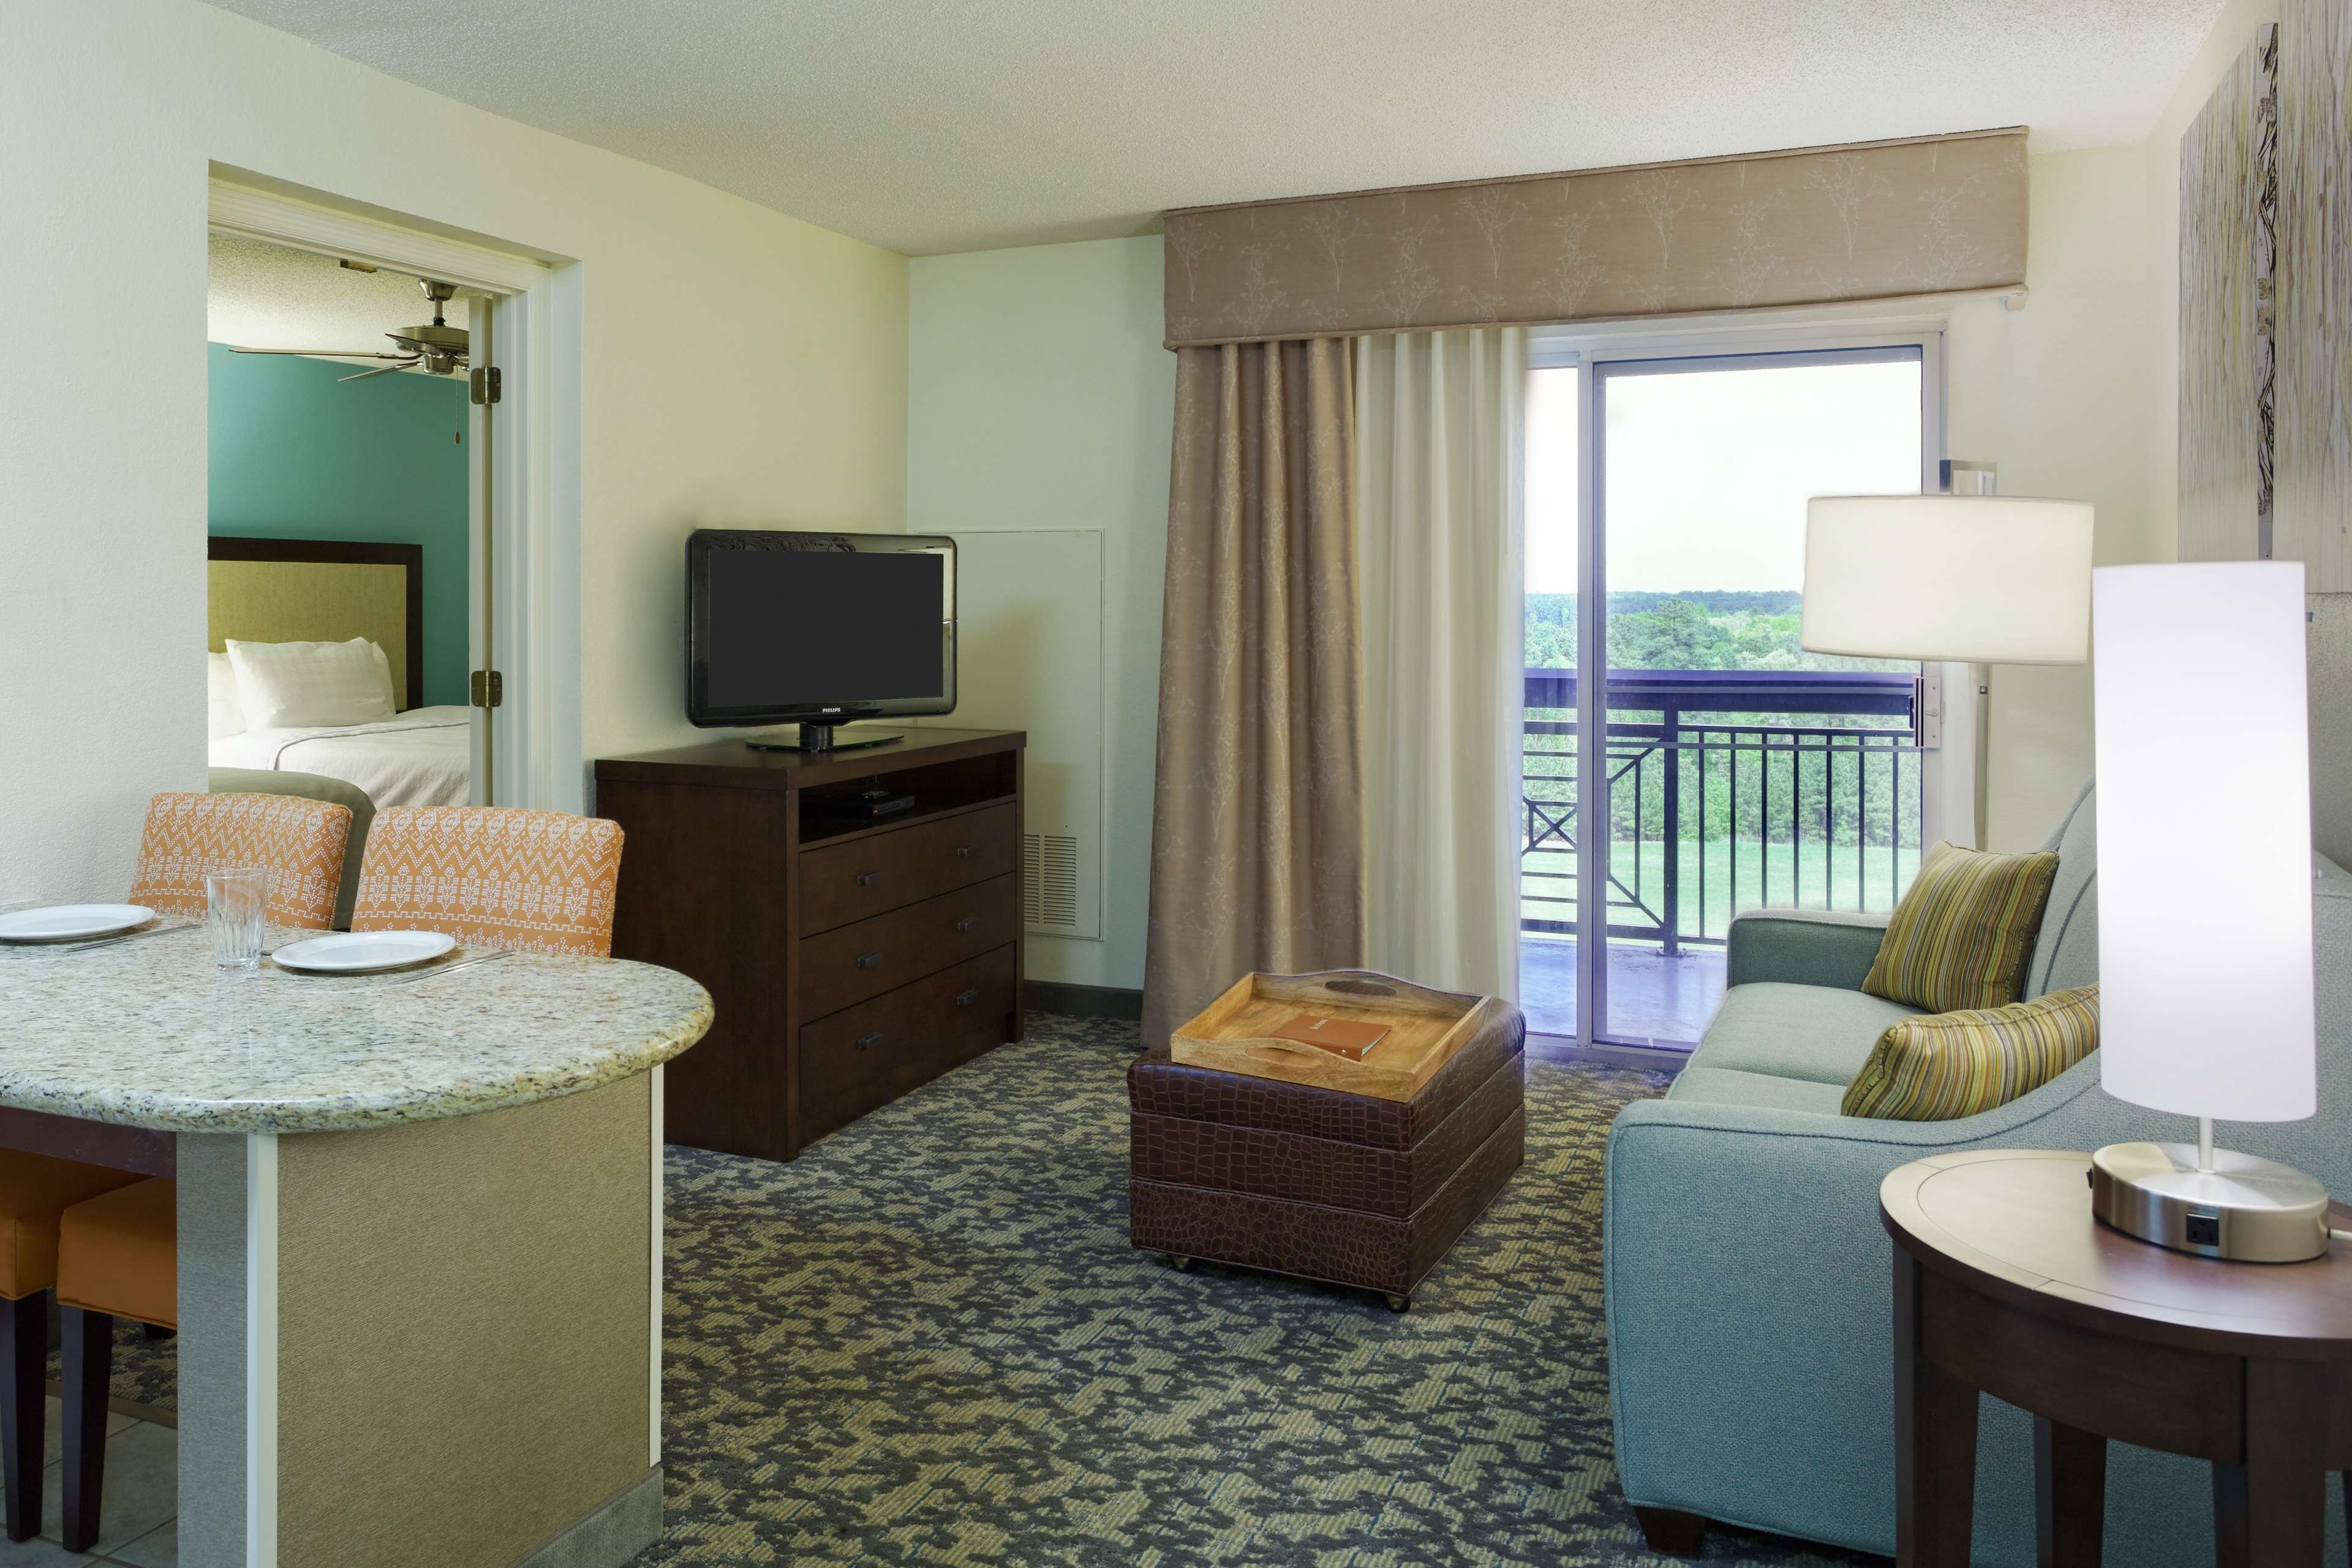 Homewood Suites by Hilton Raleigh-Durham AP/Research Triangle image 8